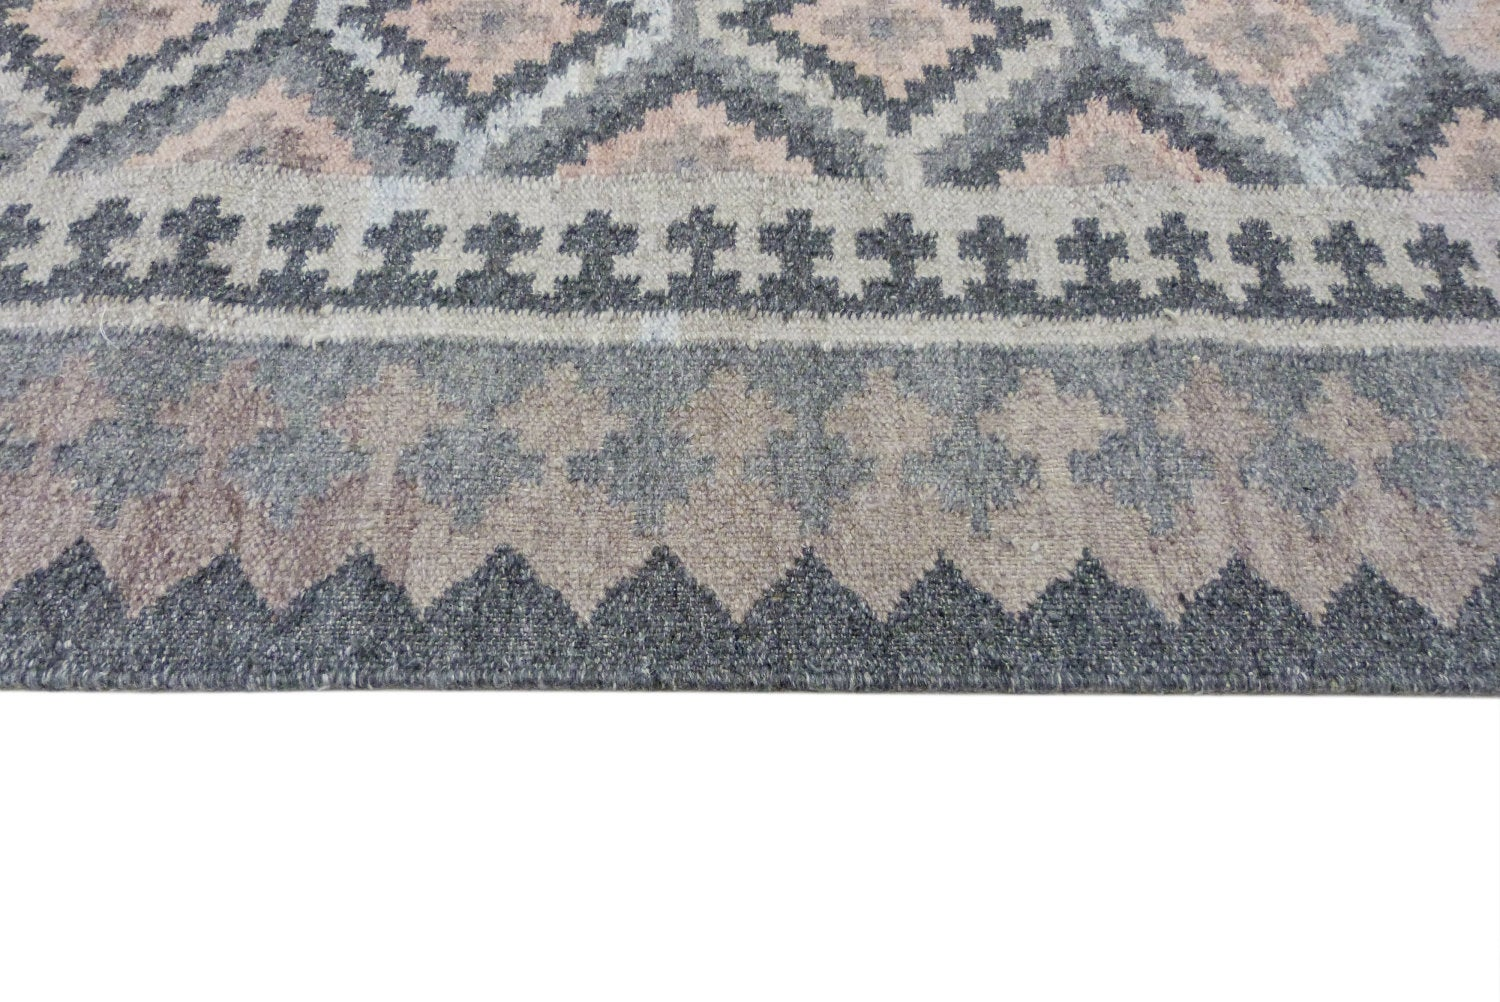 "Vintage Kilim Rug, Antique Kilim,Tribal Area Rug, Traditional, Kilim Carpet,Oriental Art,Bohemian Room,Kilim Turkey Tribal,5'3"" x 7'6"" SP604"